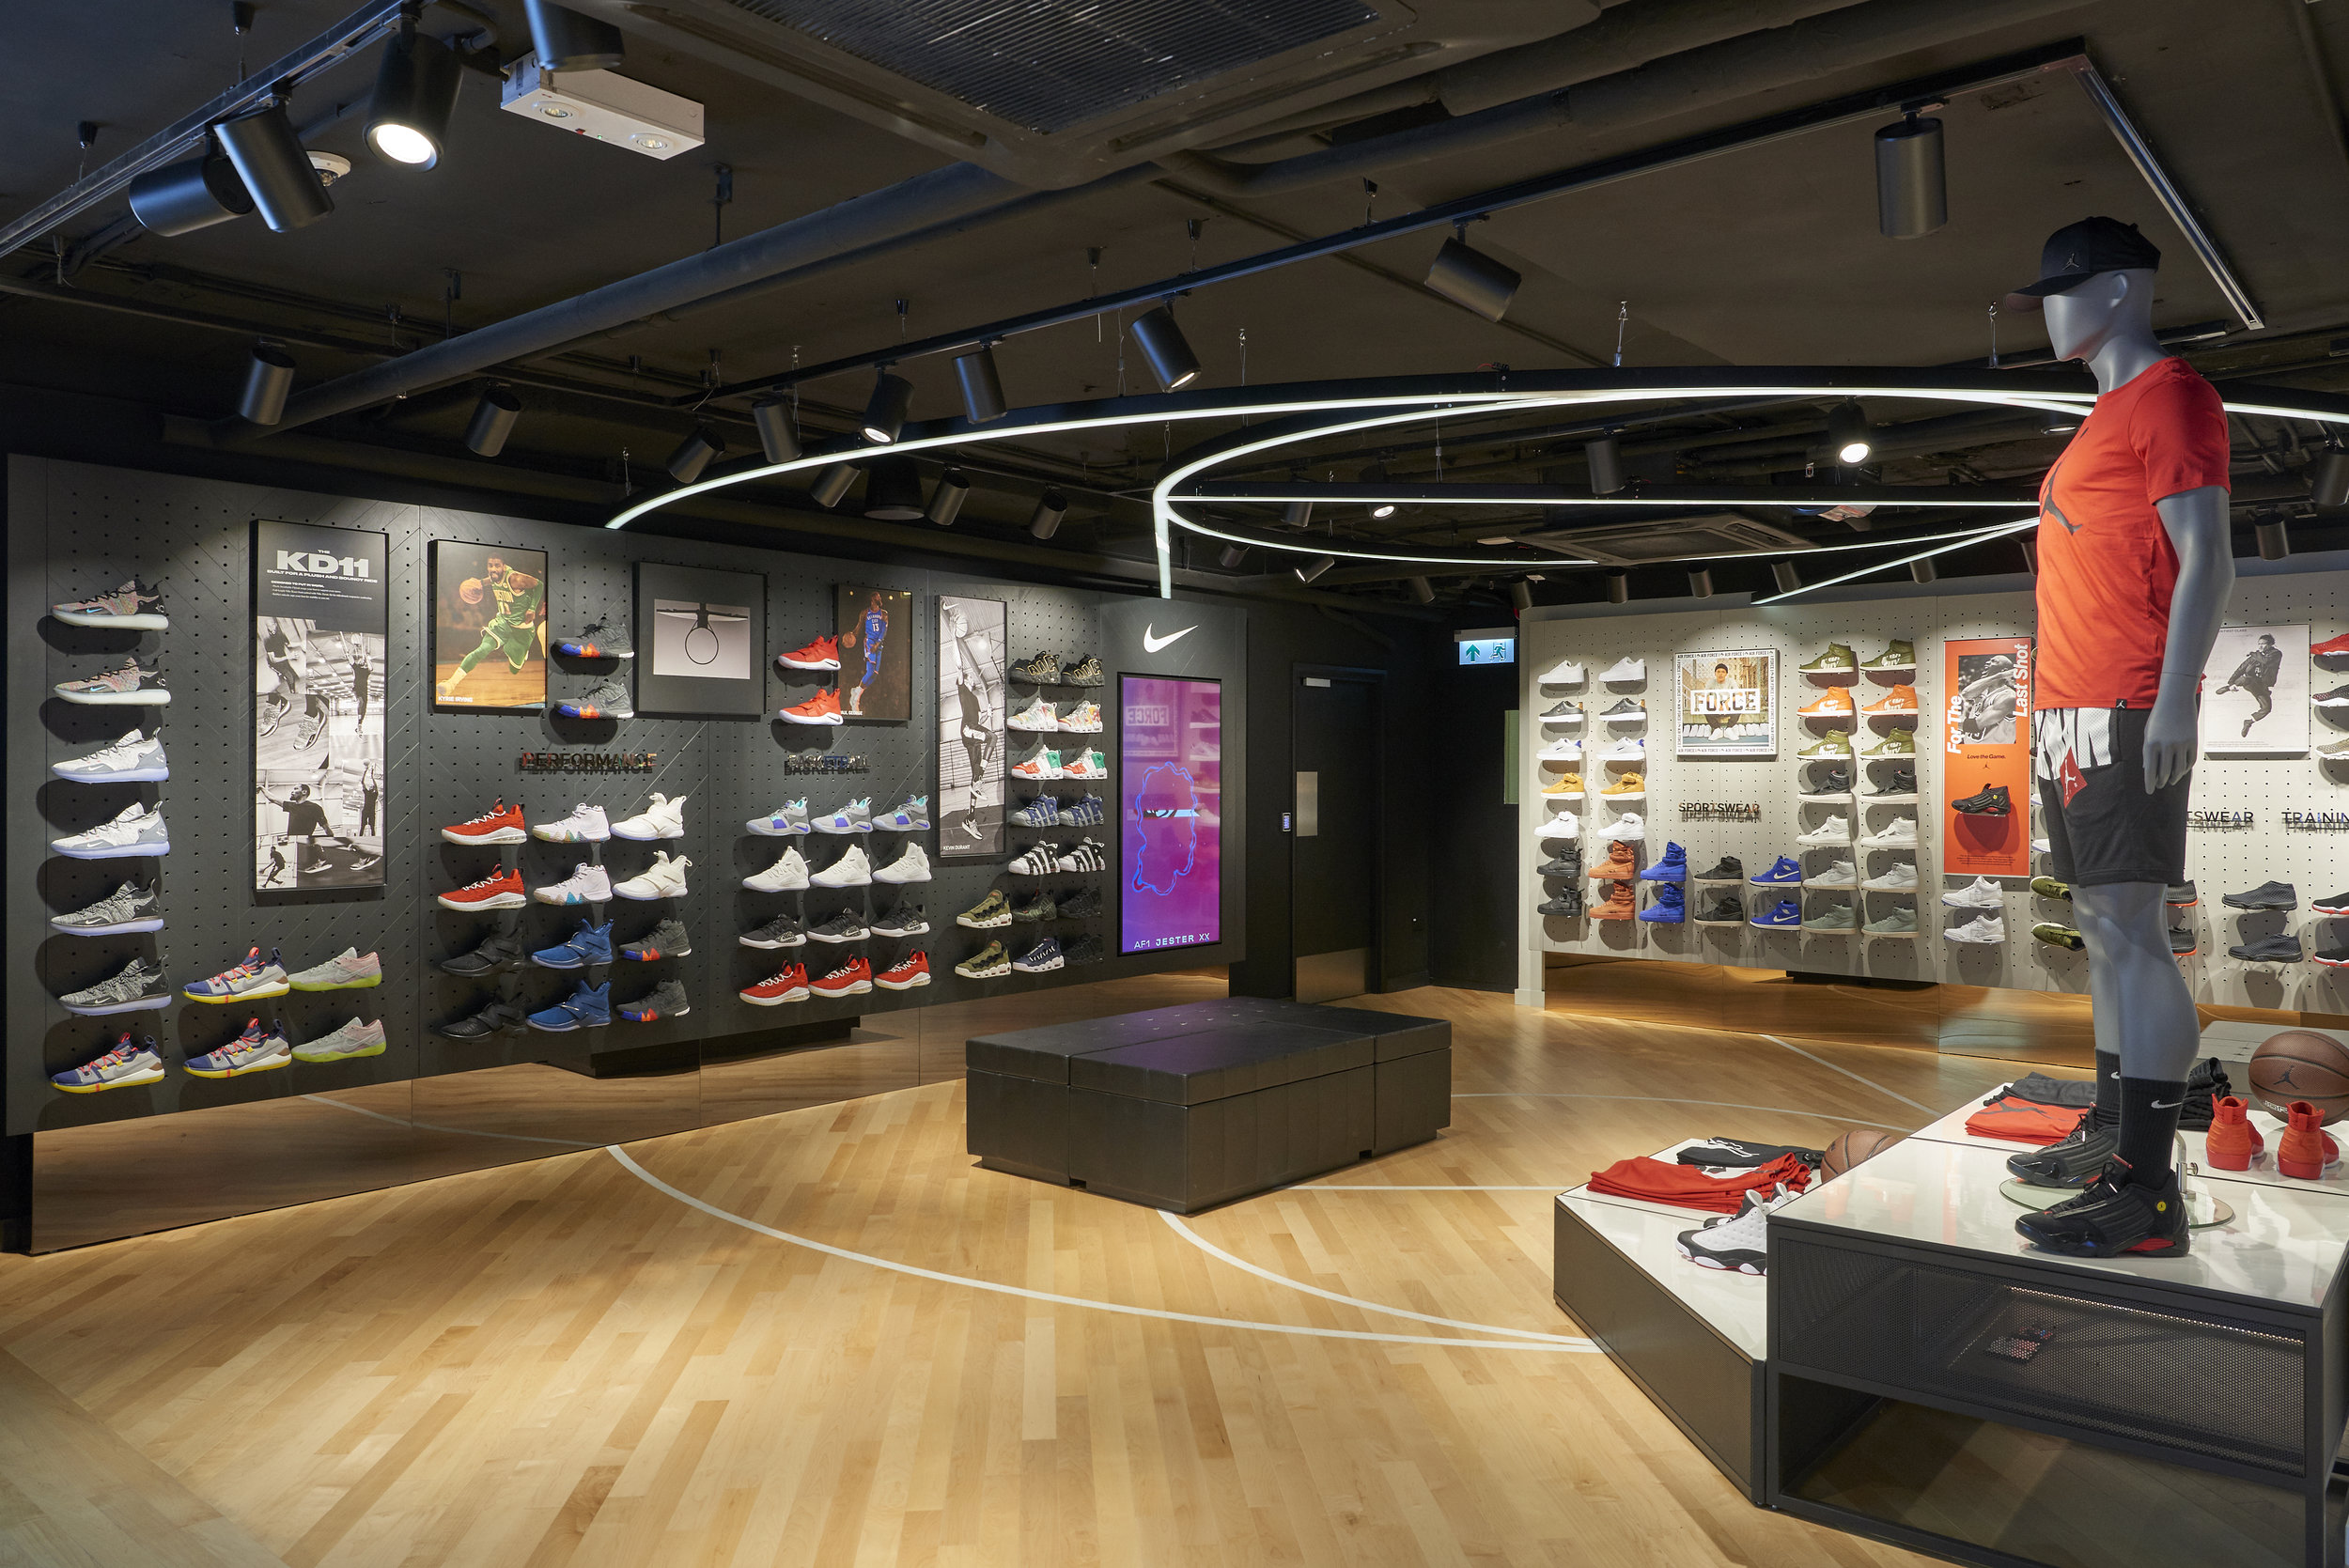 Celebrate basketball with premium Nike and Jordan products at the in-store House of Hoops_2.jpg